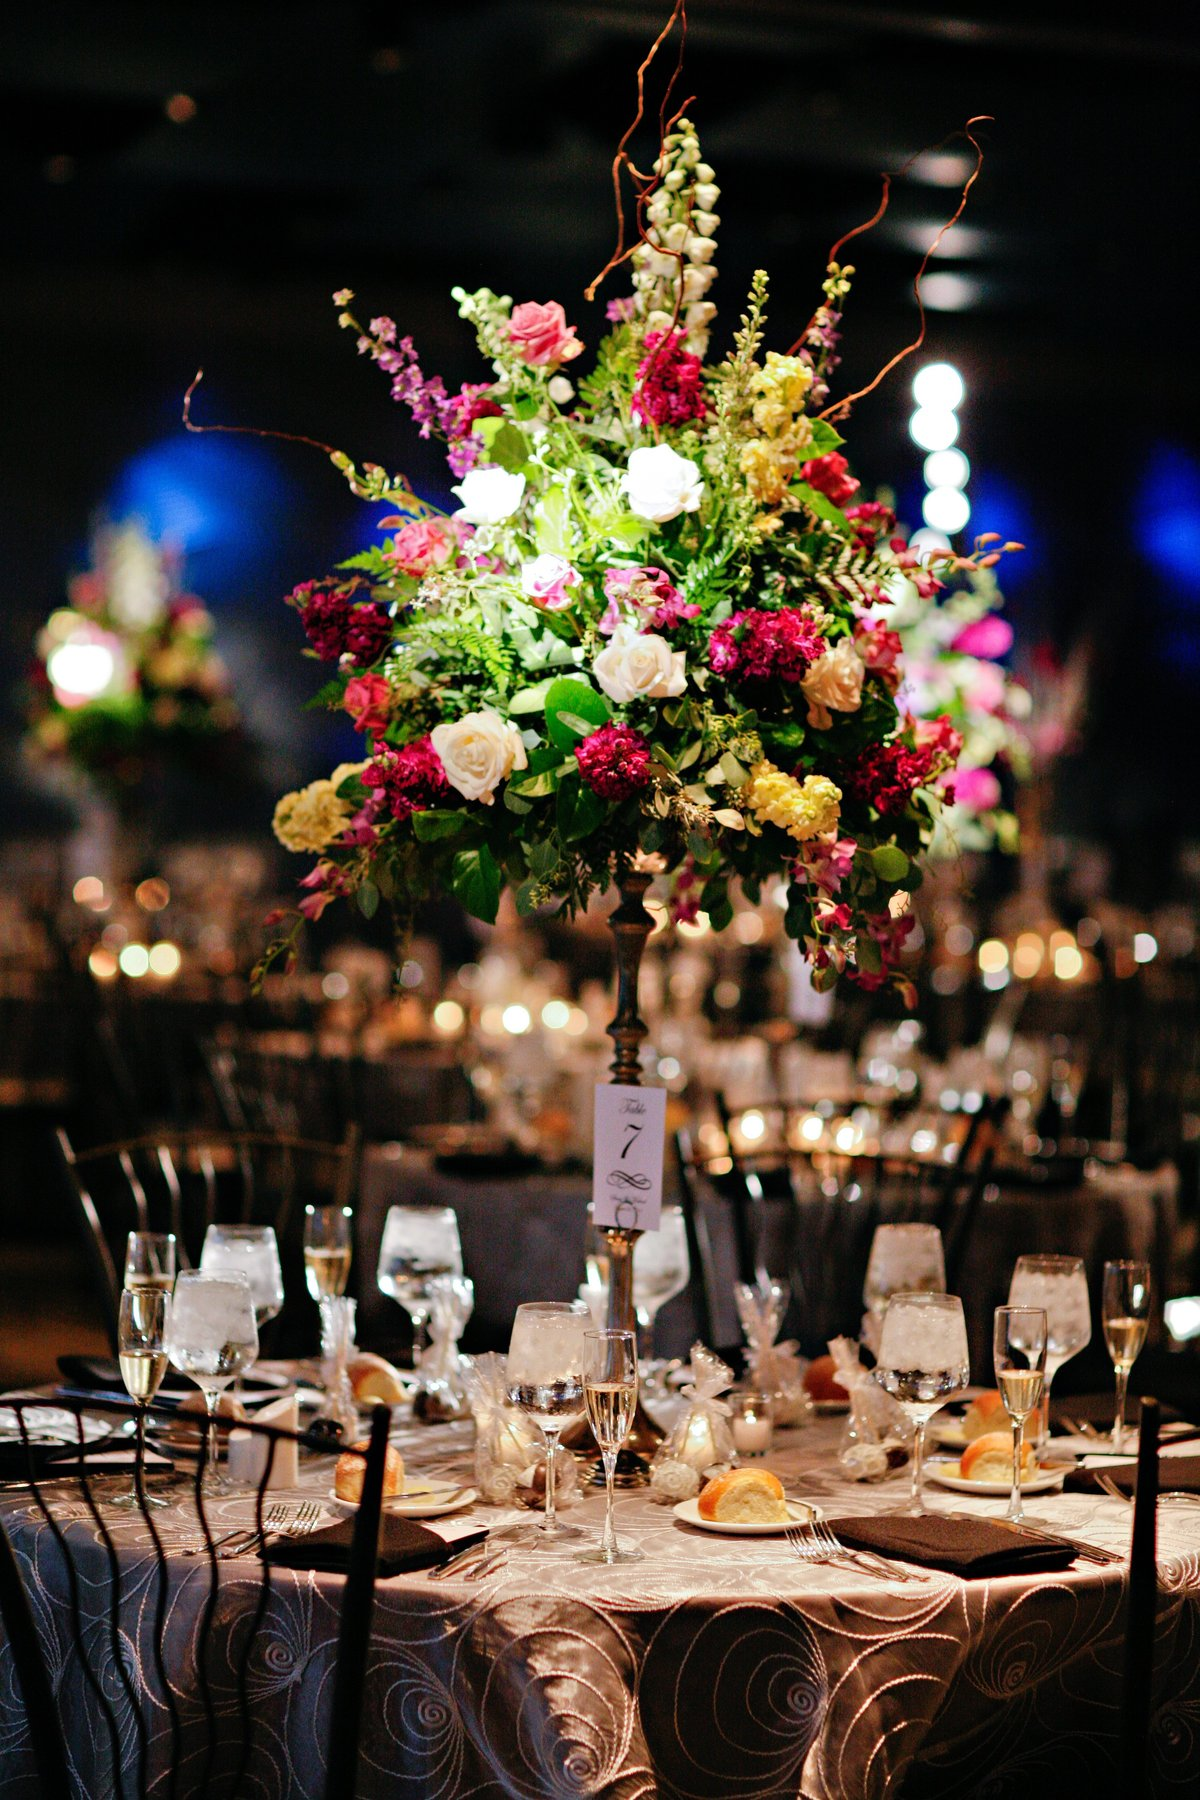 Eventricity Floral Design of centerpiece for adventure aquarium wedding reception in new jersey